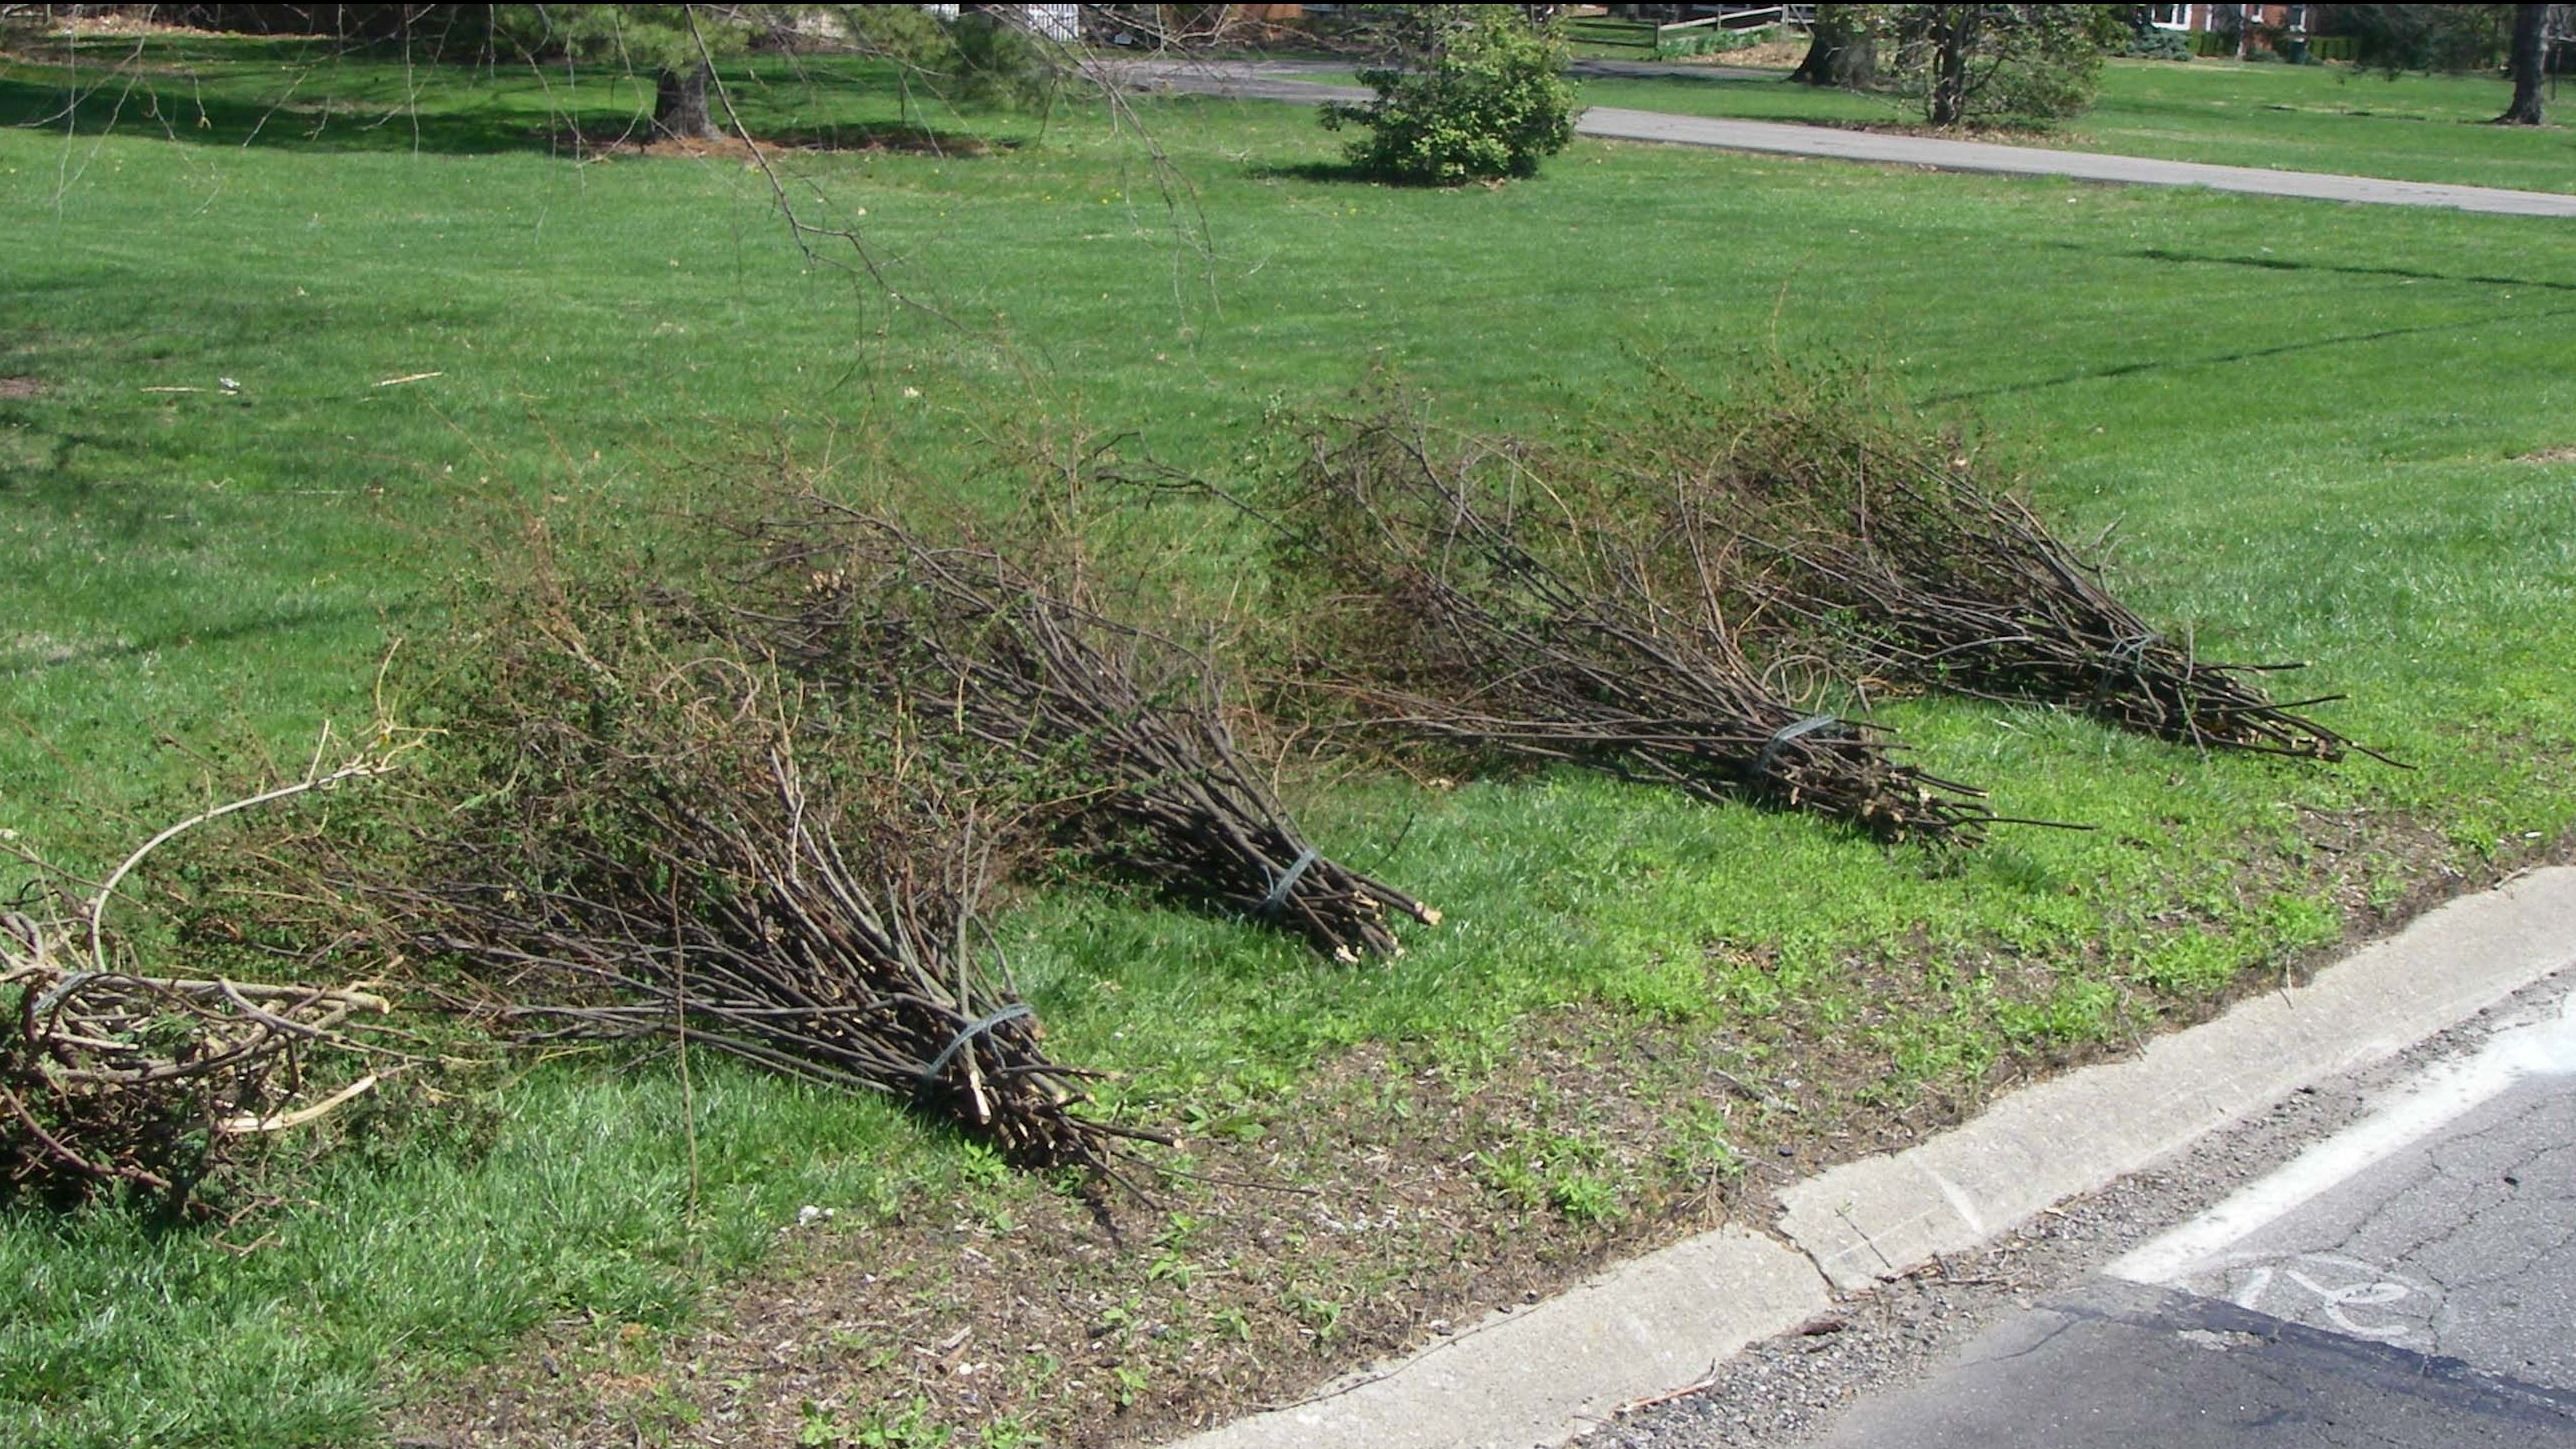 Pile of Brush at Curb